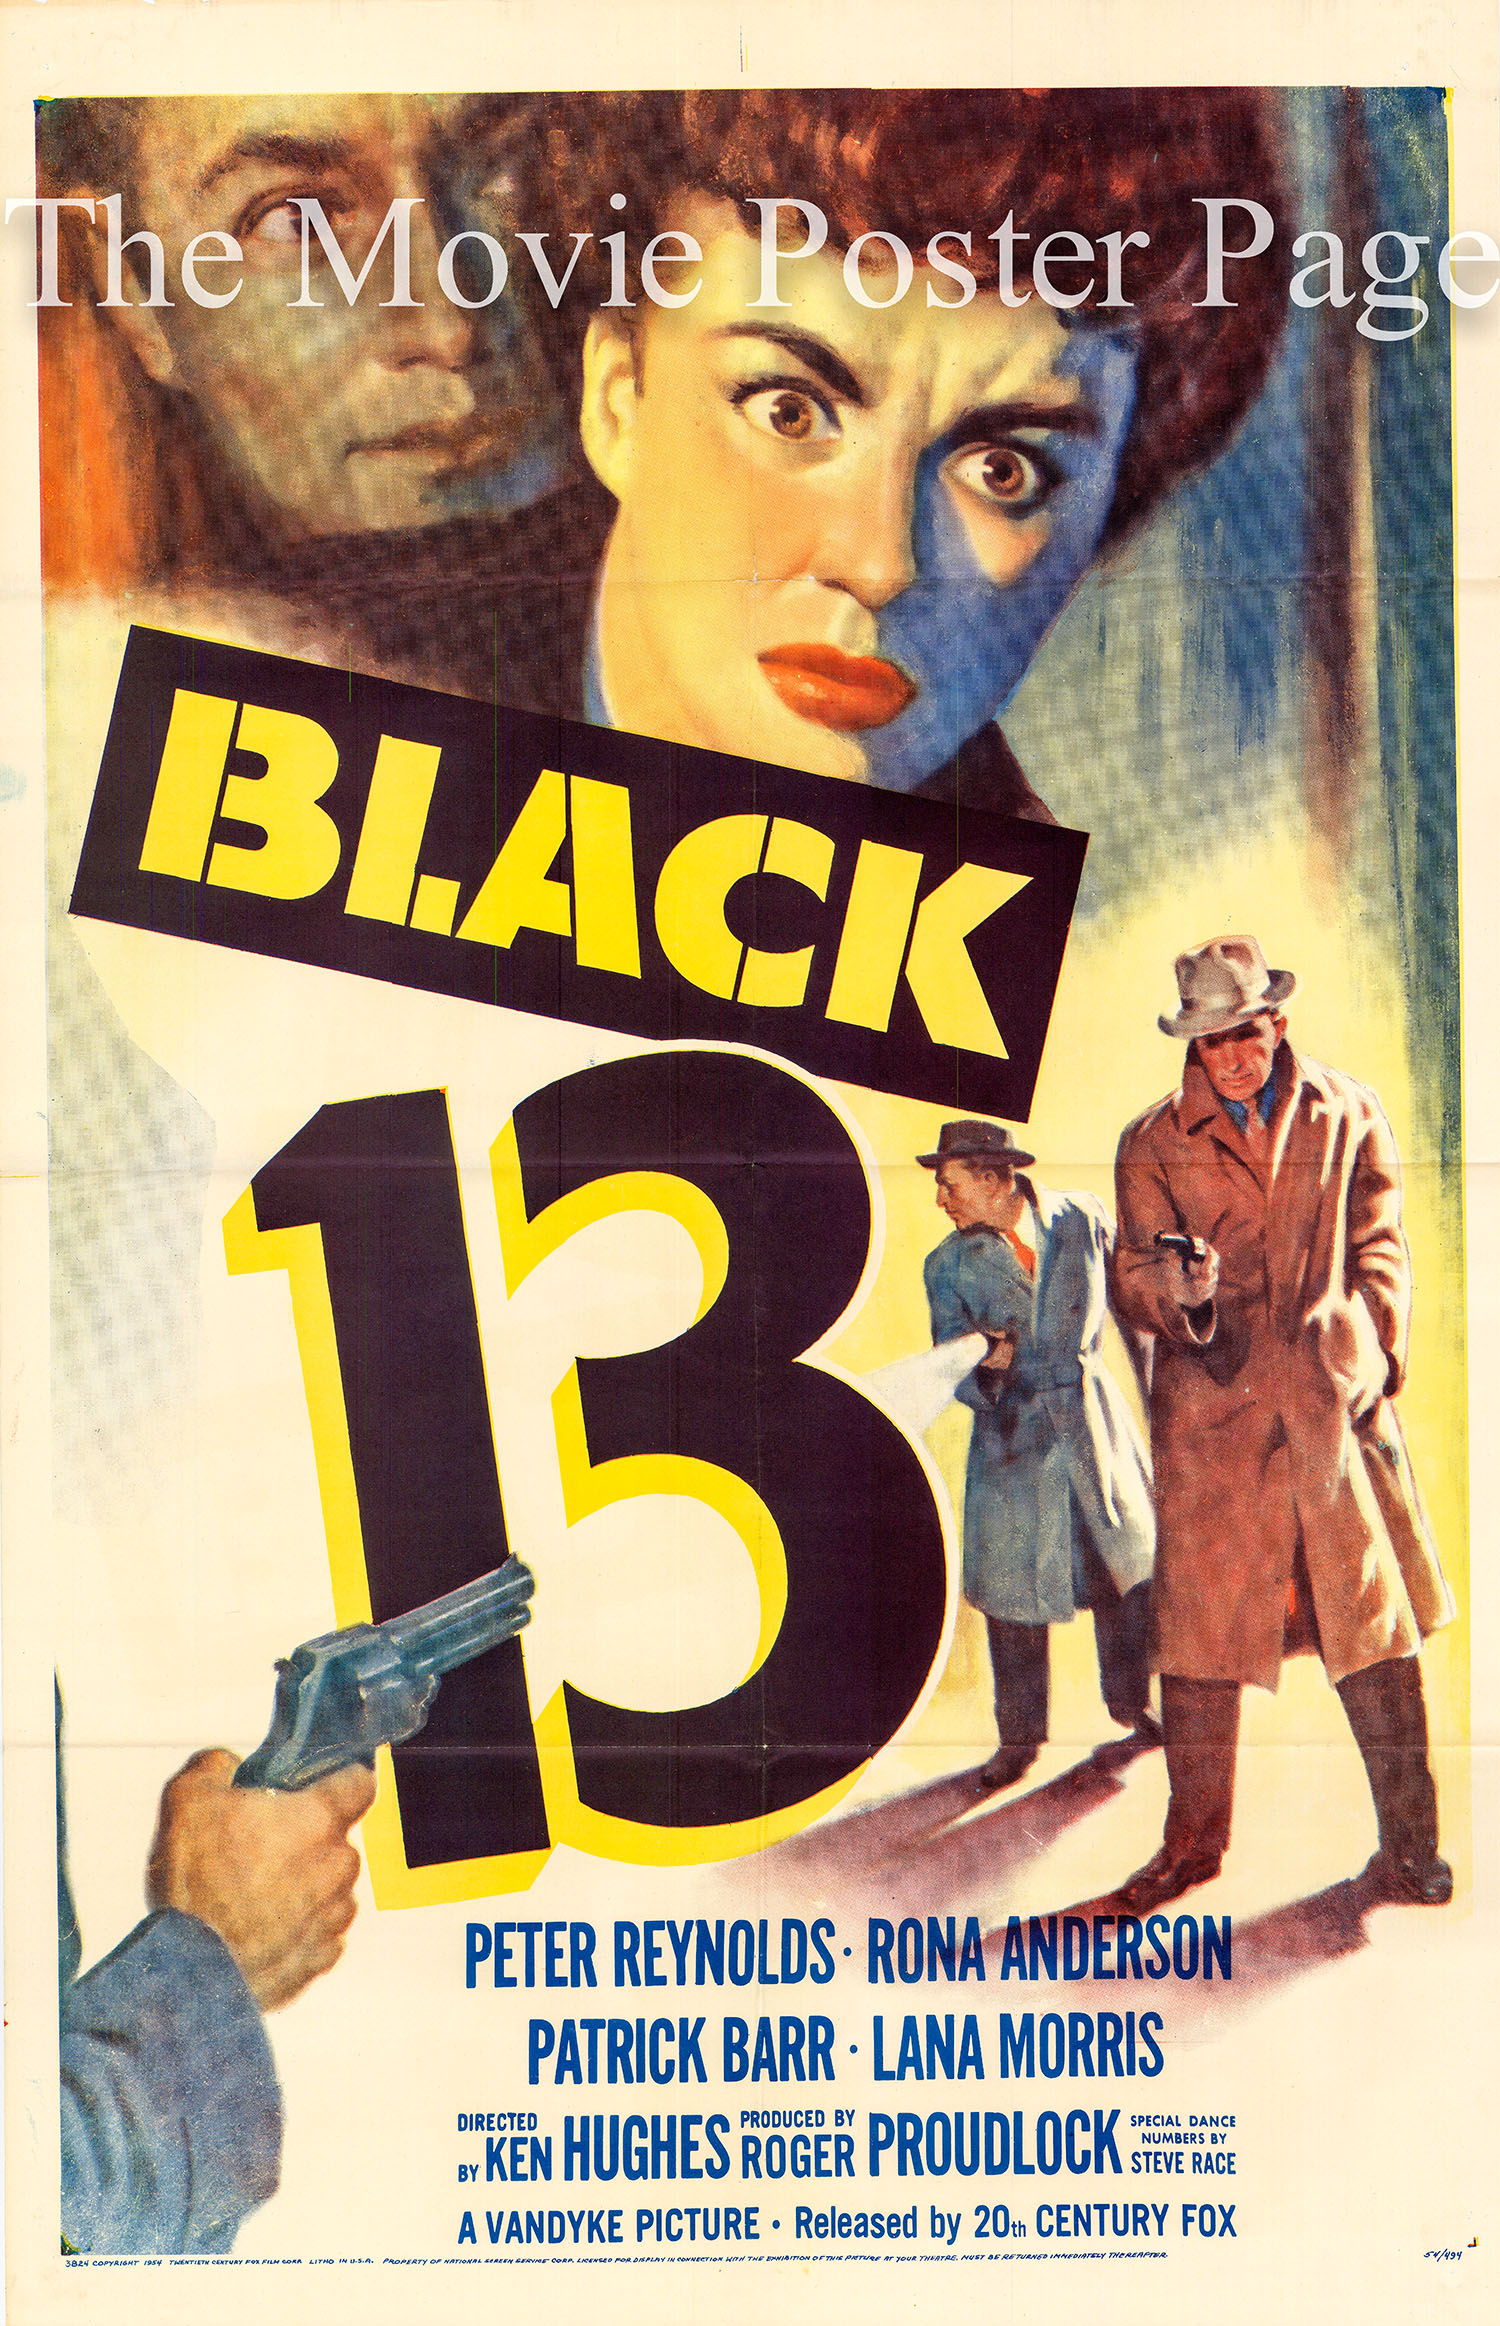 Pictured is a US one-sheet poster for the 1954 Ken Hughes film Black 13 starring Peter Reynolds.